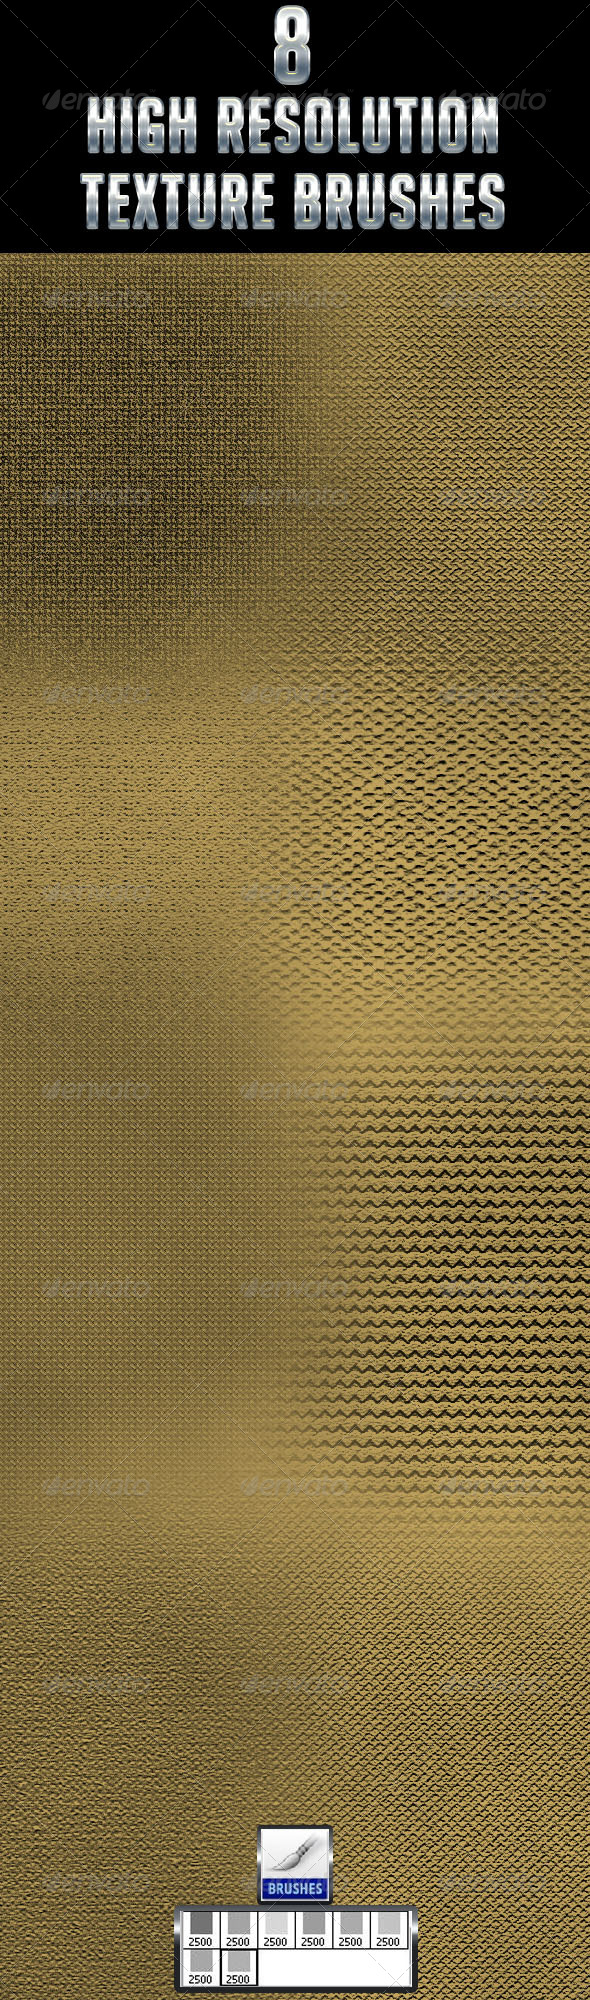 GraphicRiver 8 High Resolution Texture Brushes 4478555